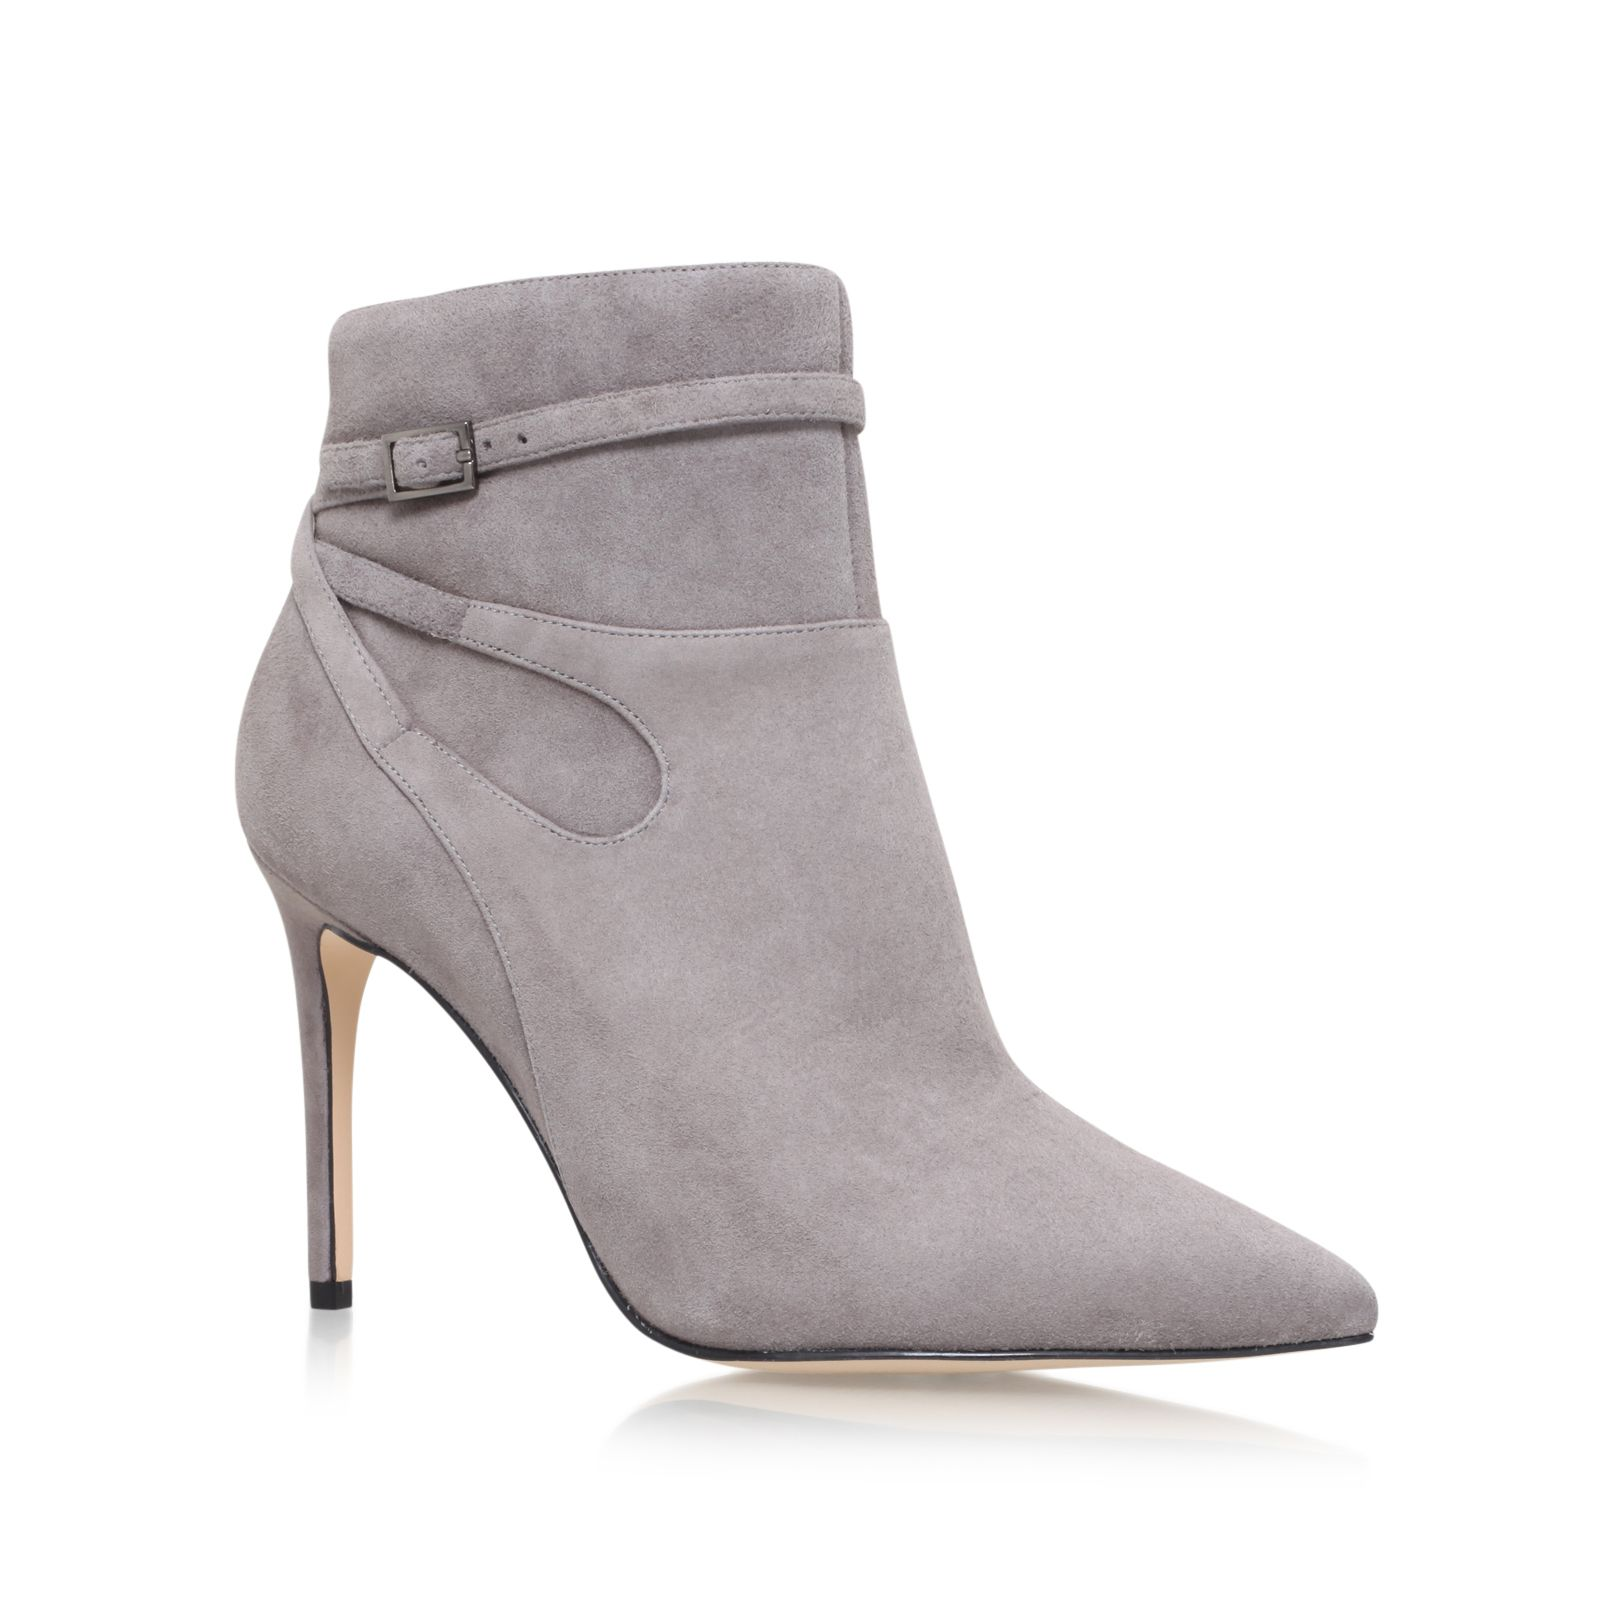 Nine West Nine West Tanesha high heel ankle boots, Light Grey